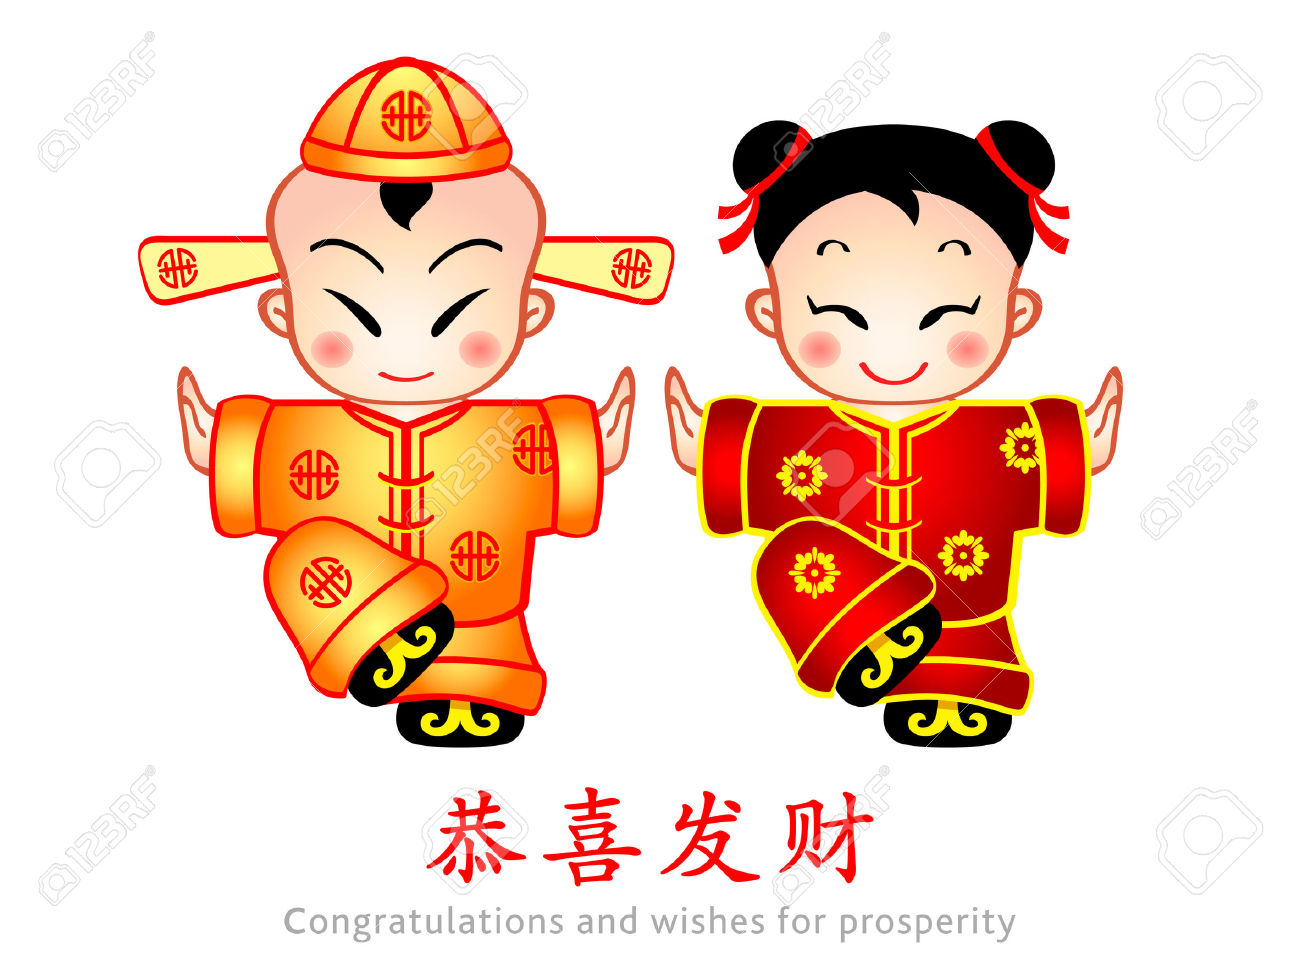 8085960-Chinese-New-Year-congratulations-with-smiling-boy-and-girl-Stock-Vector